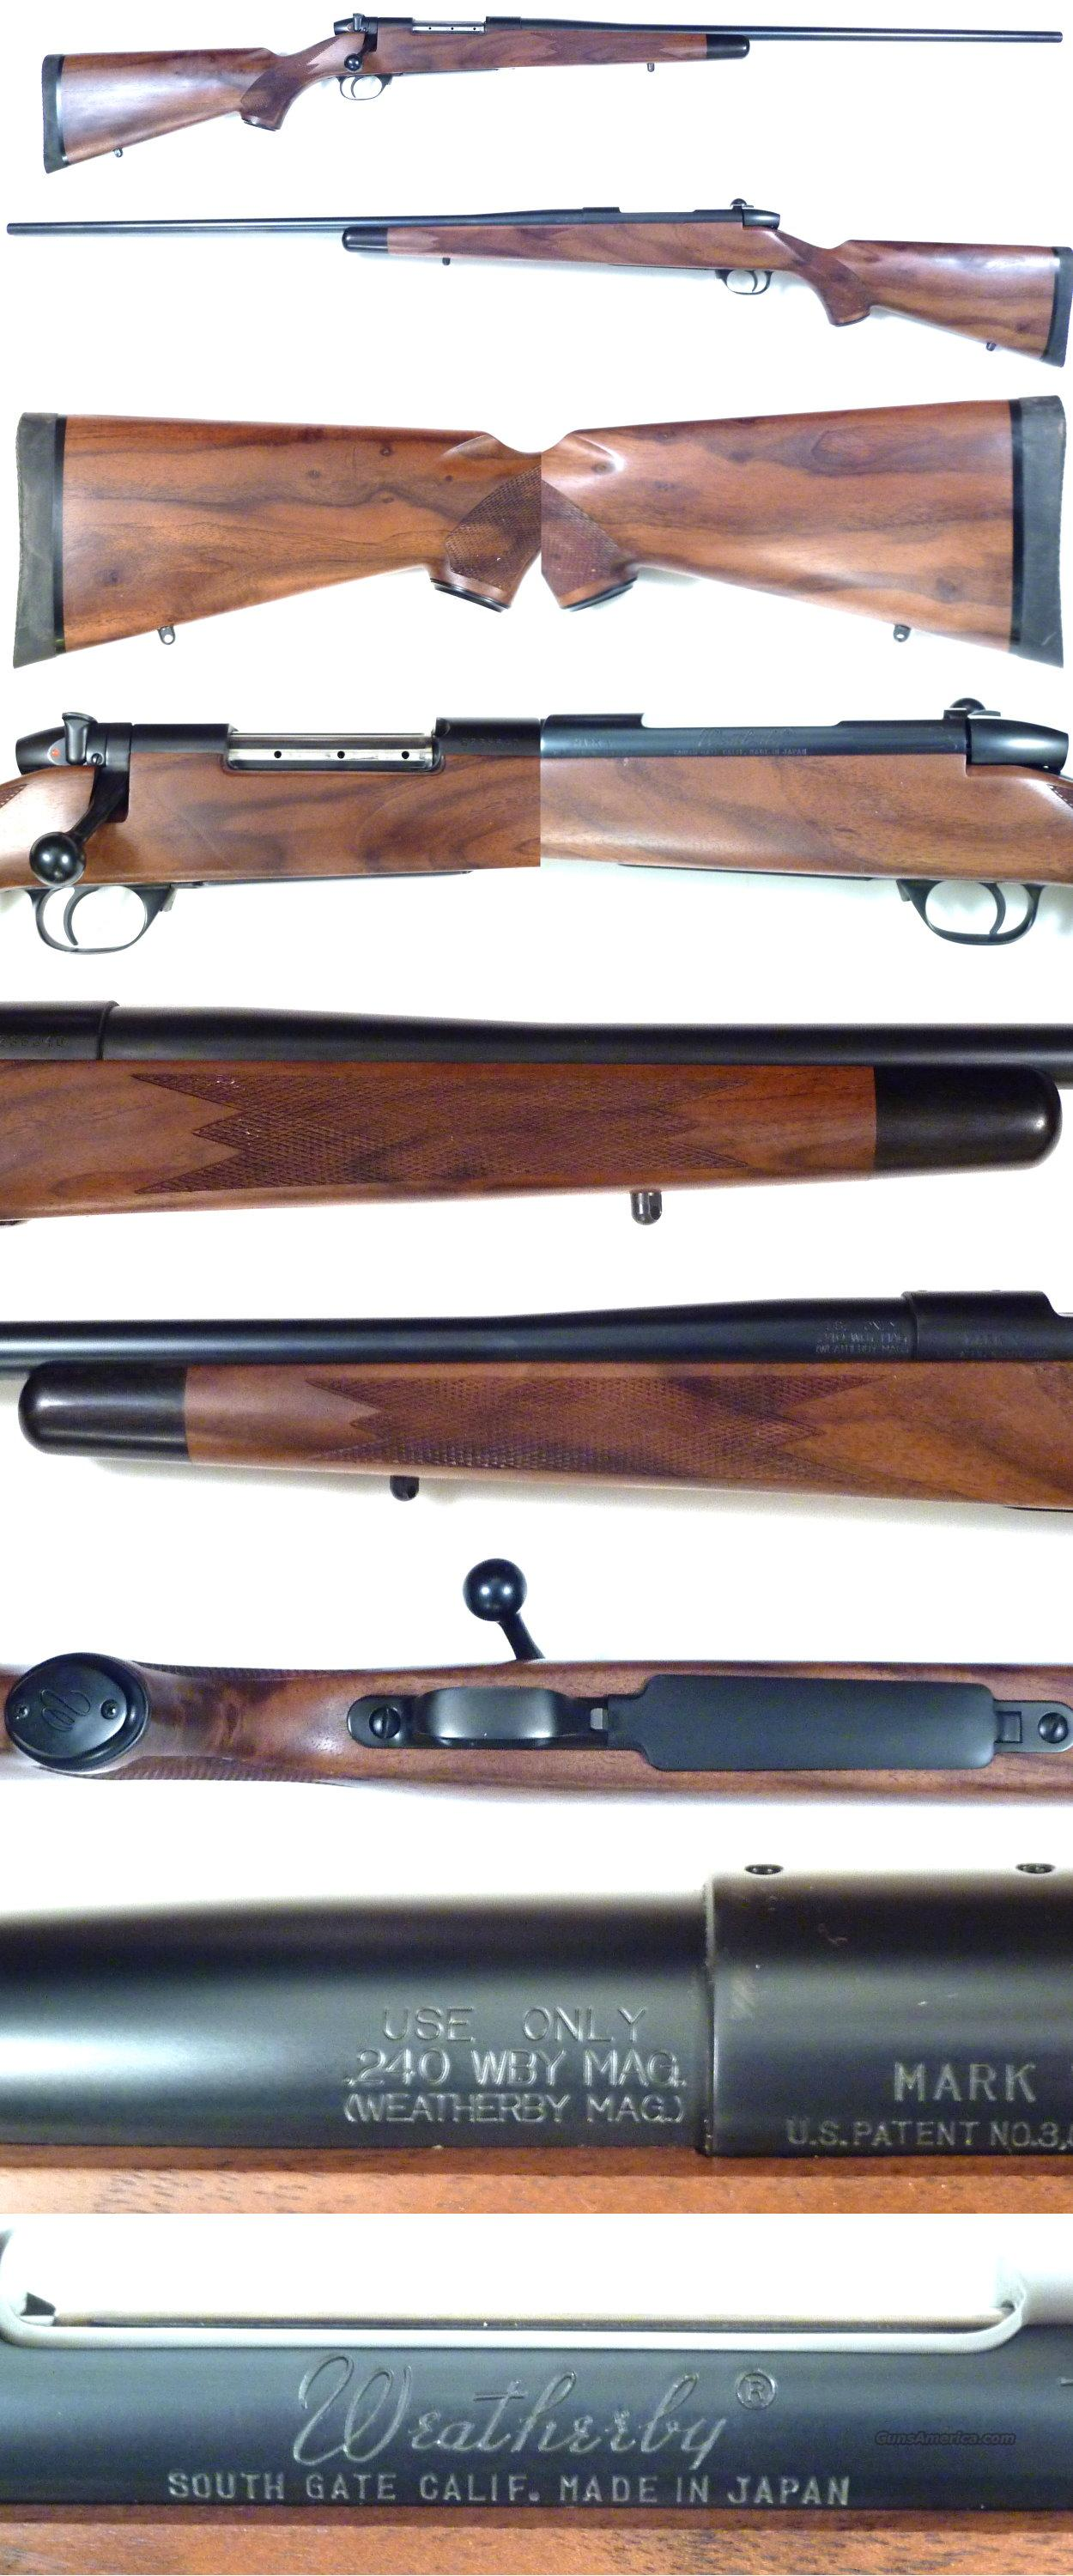 "Weatherby Mark V Classic Mark 240 Wthy Mag 26""  Guns > Rifles > Weatherby Rifles > Sporting"